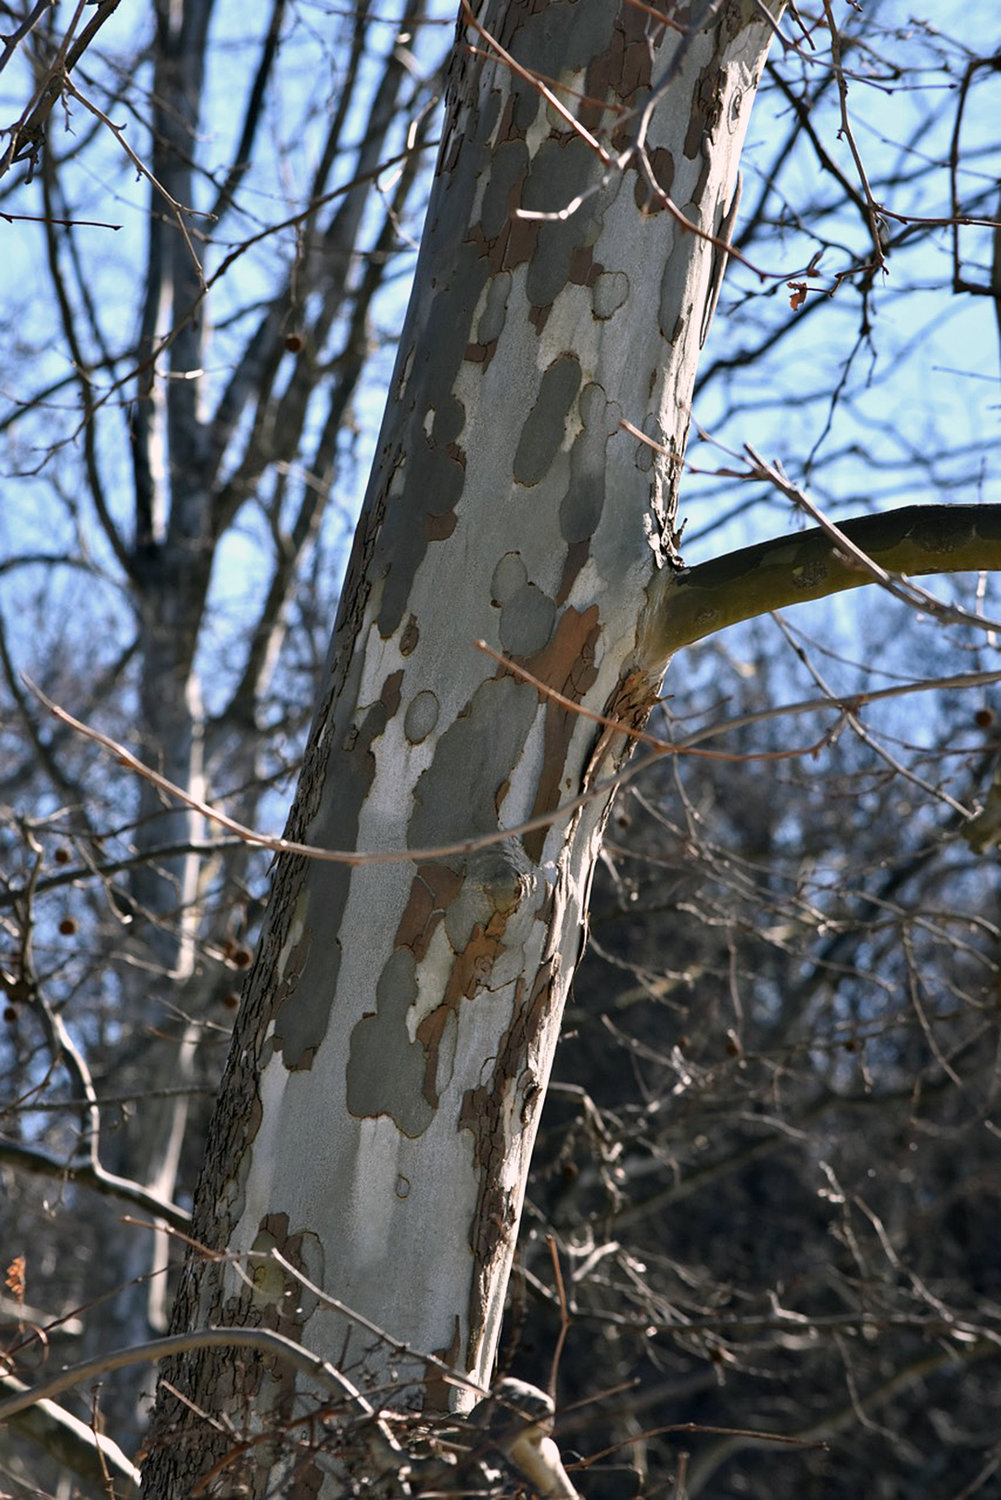 The artful bark of the sycamore tree is unmistakable.